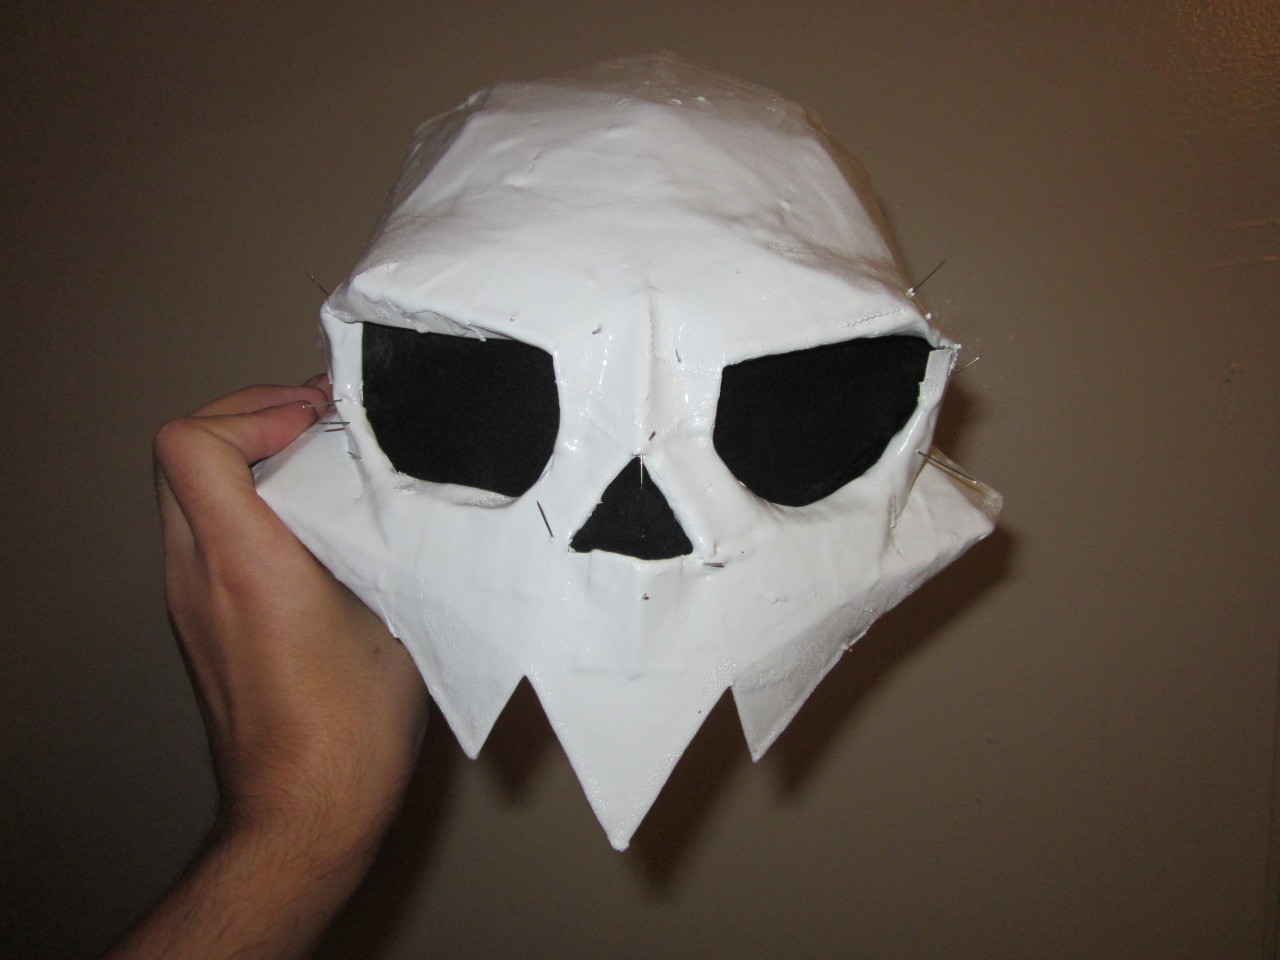 Those pins poke out of the front of the mask.